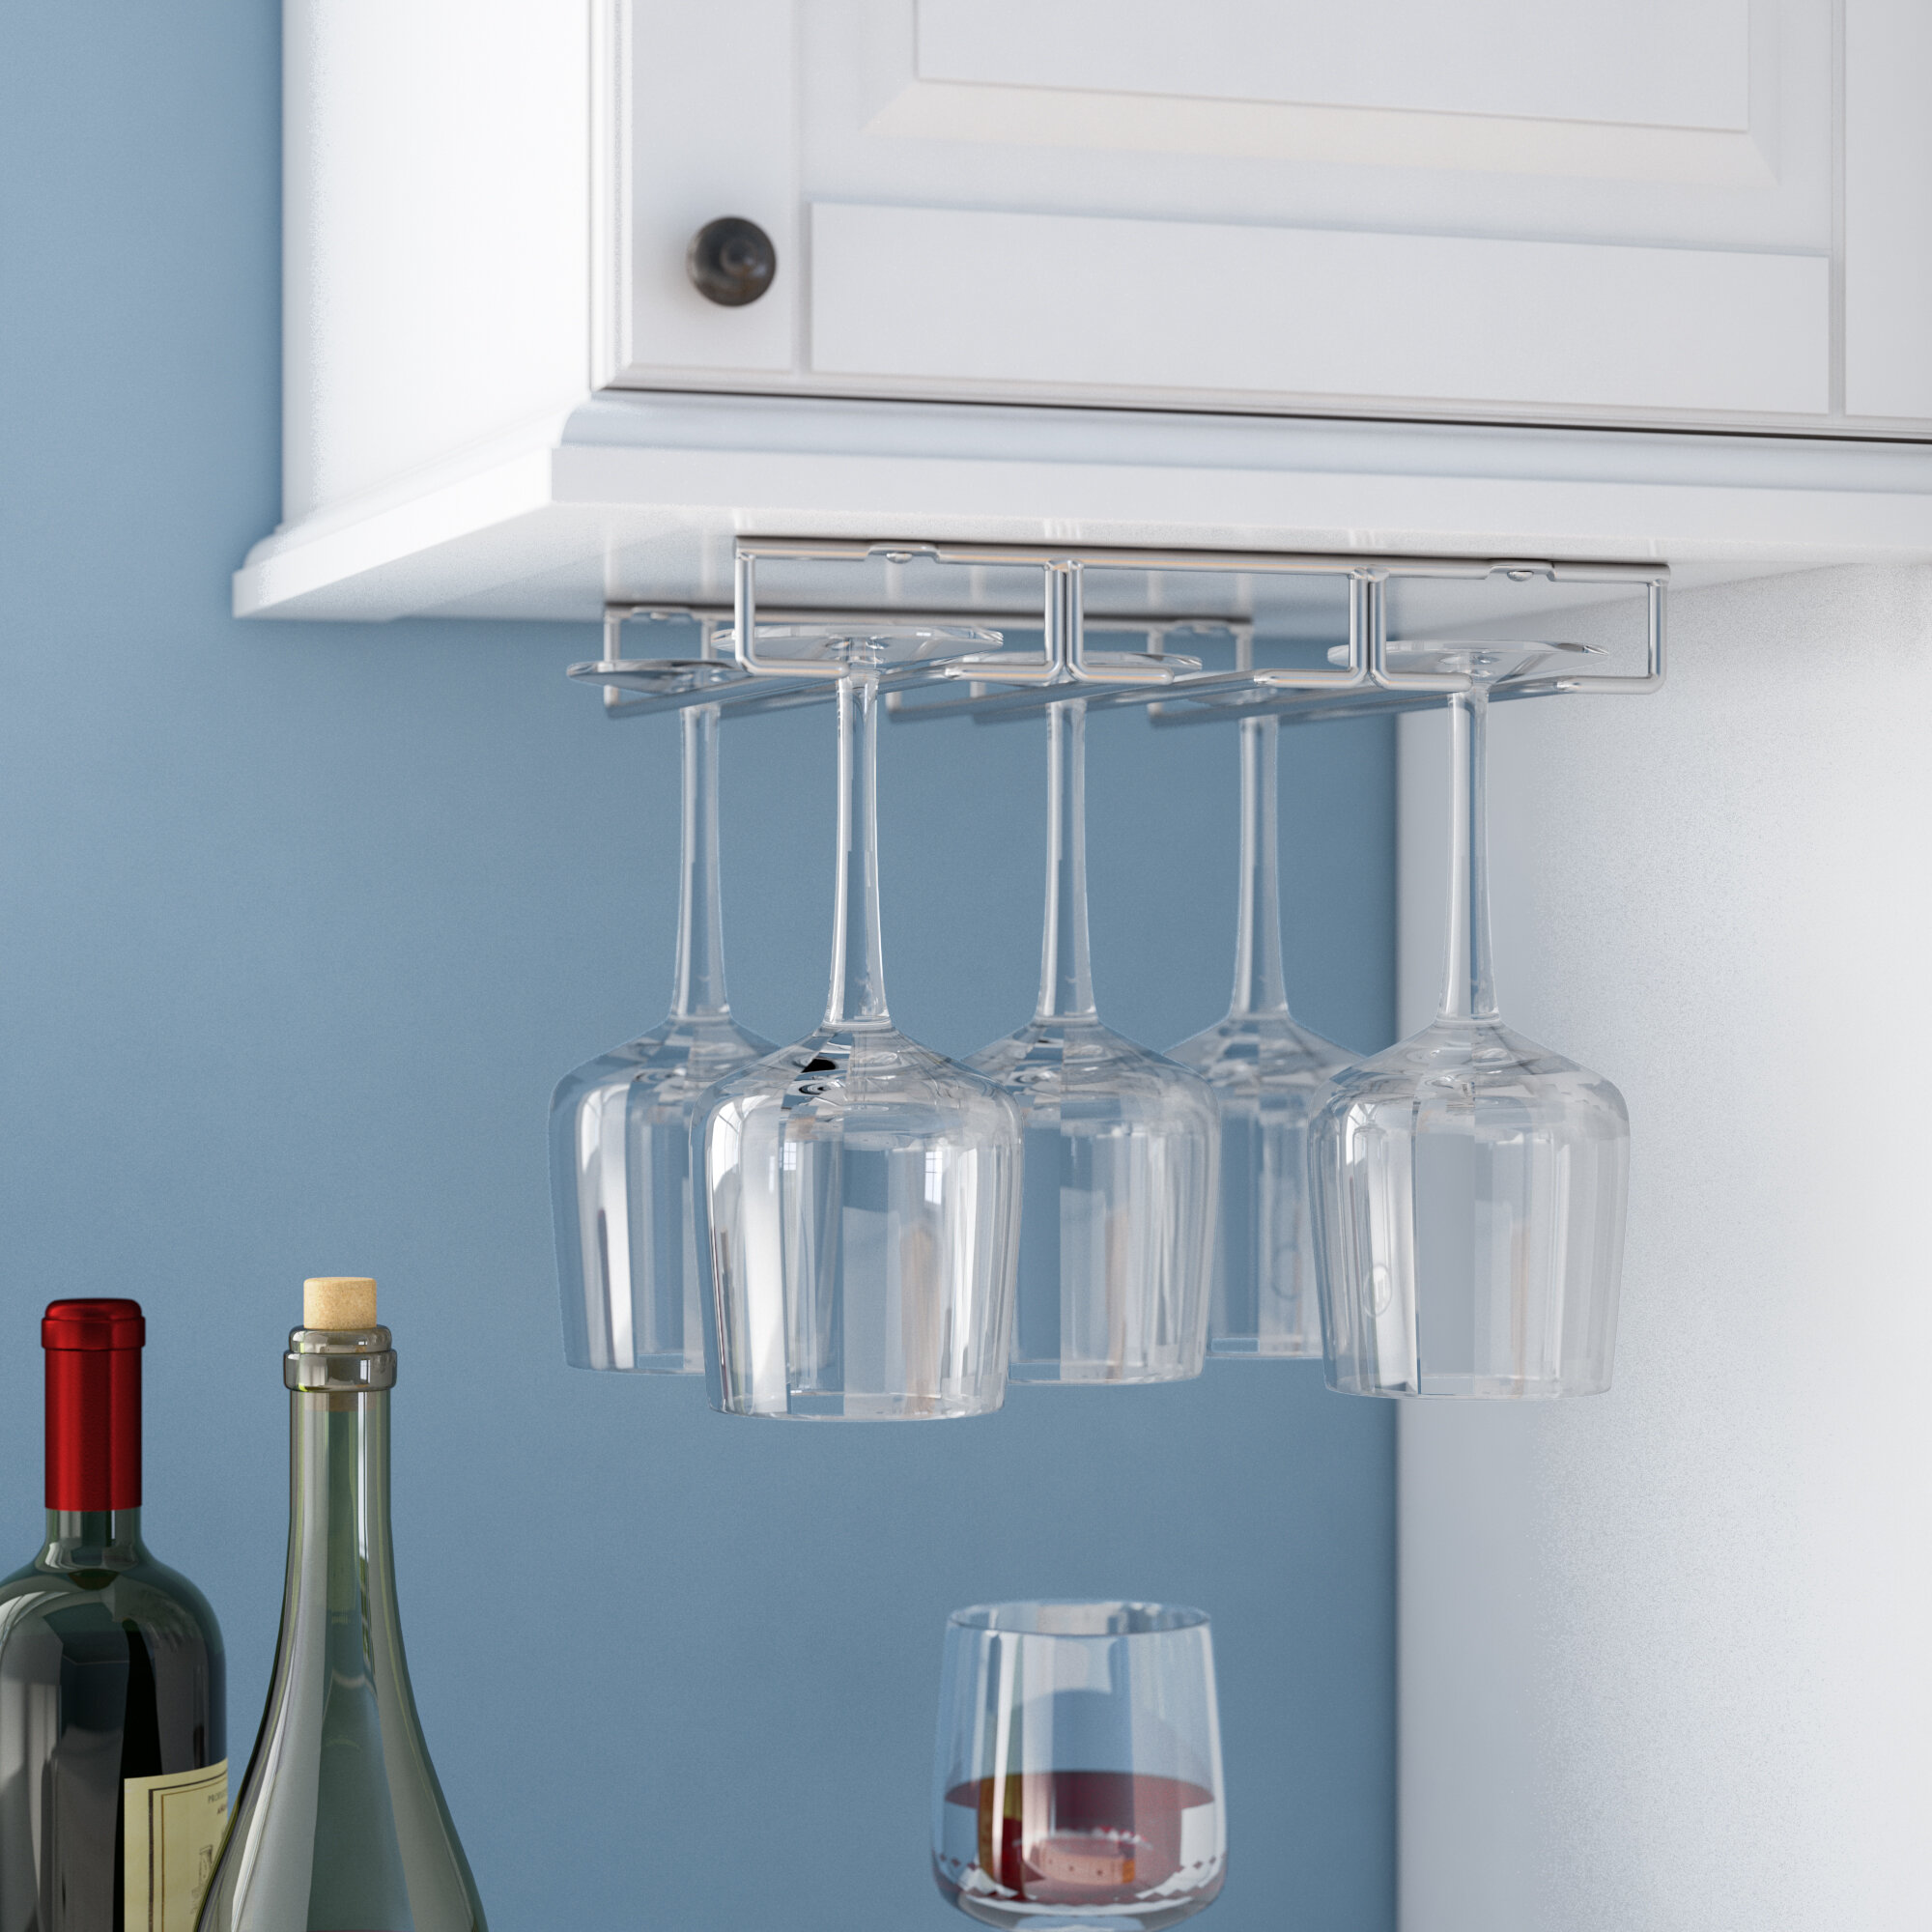 uncategorized masata simple wine design of glass wall style pic shelf mounted and rack xfile the range fascinating diy easy